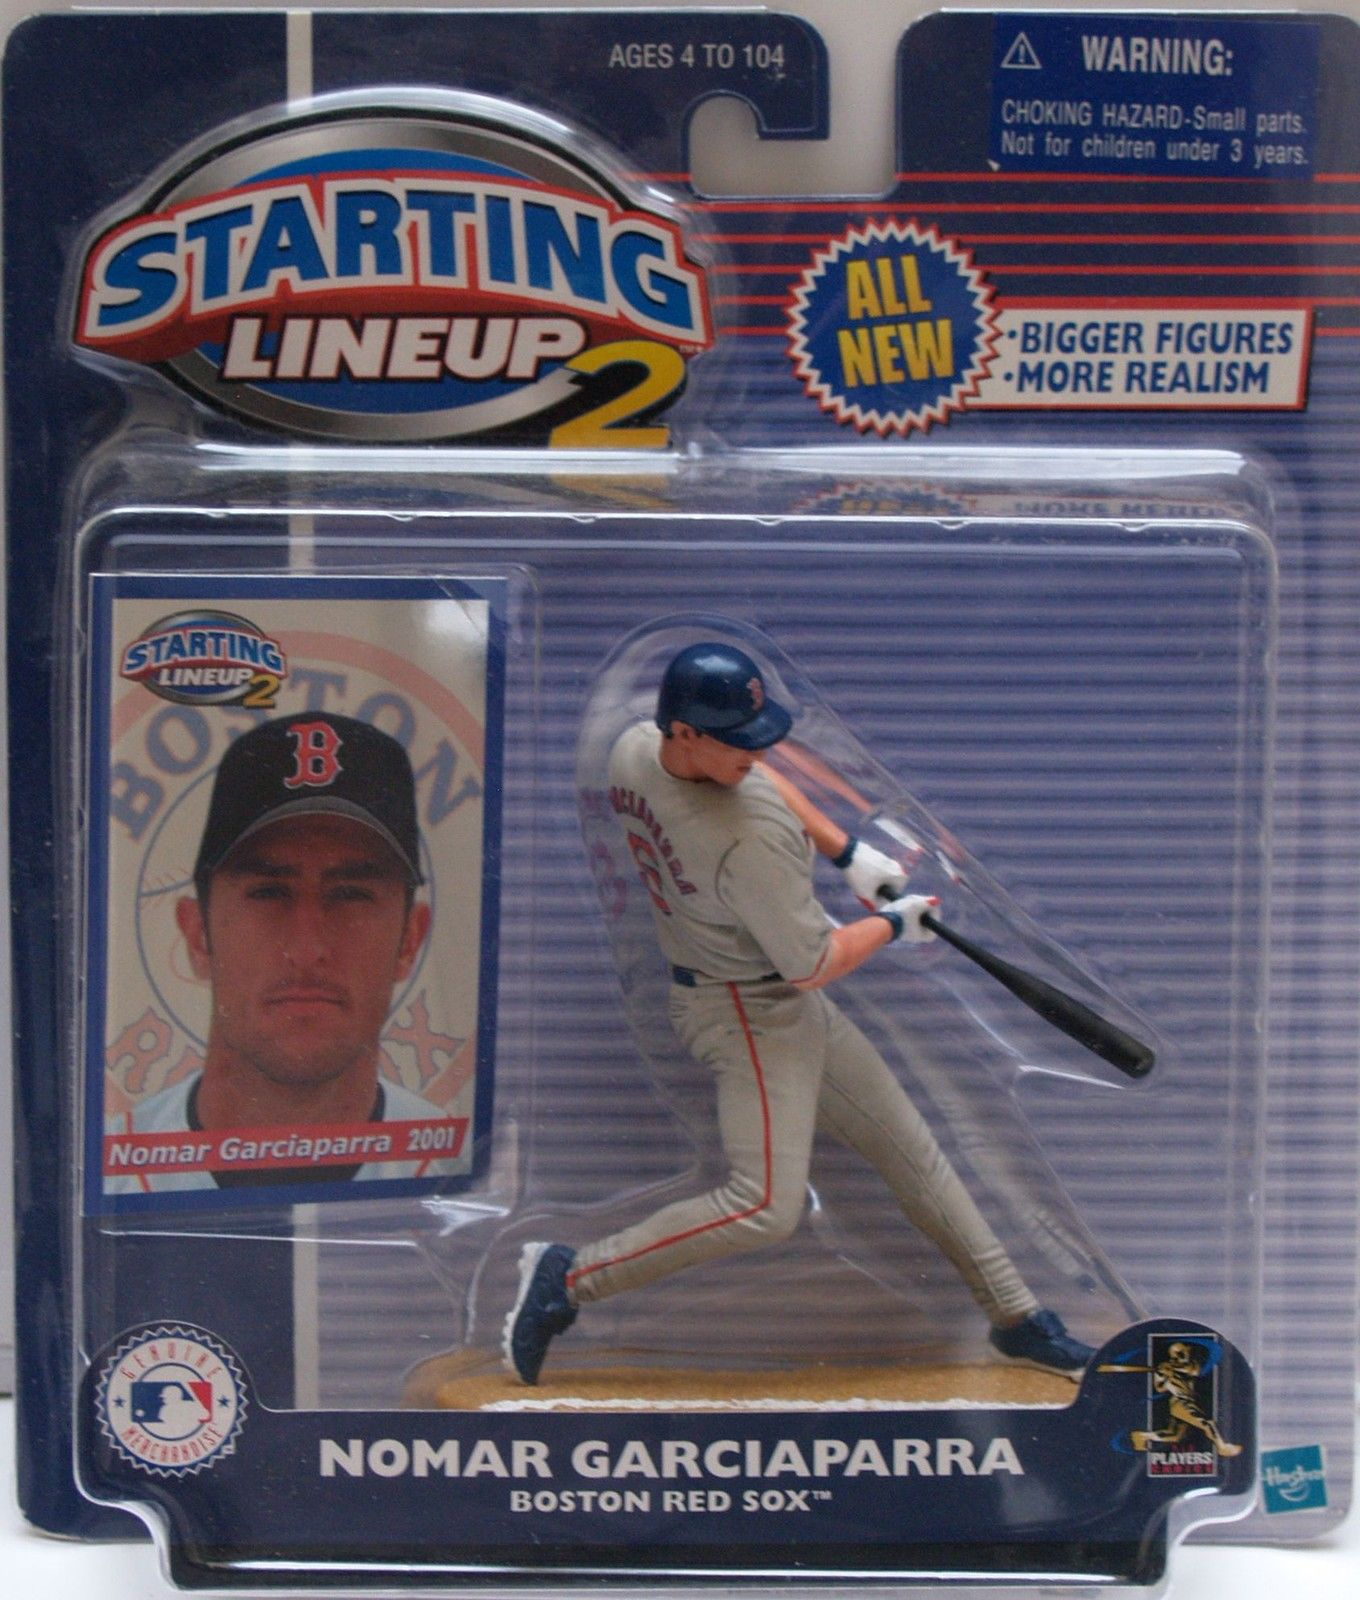 STARTING LINEUP 2 - NOMAR GARCIAPARRA 2001 - BOSTON RED SOX